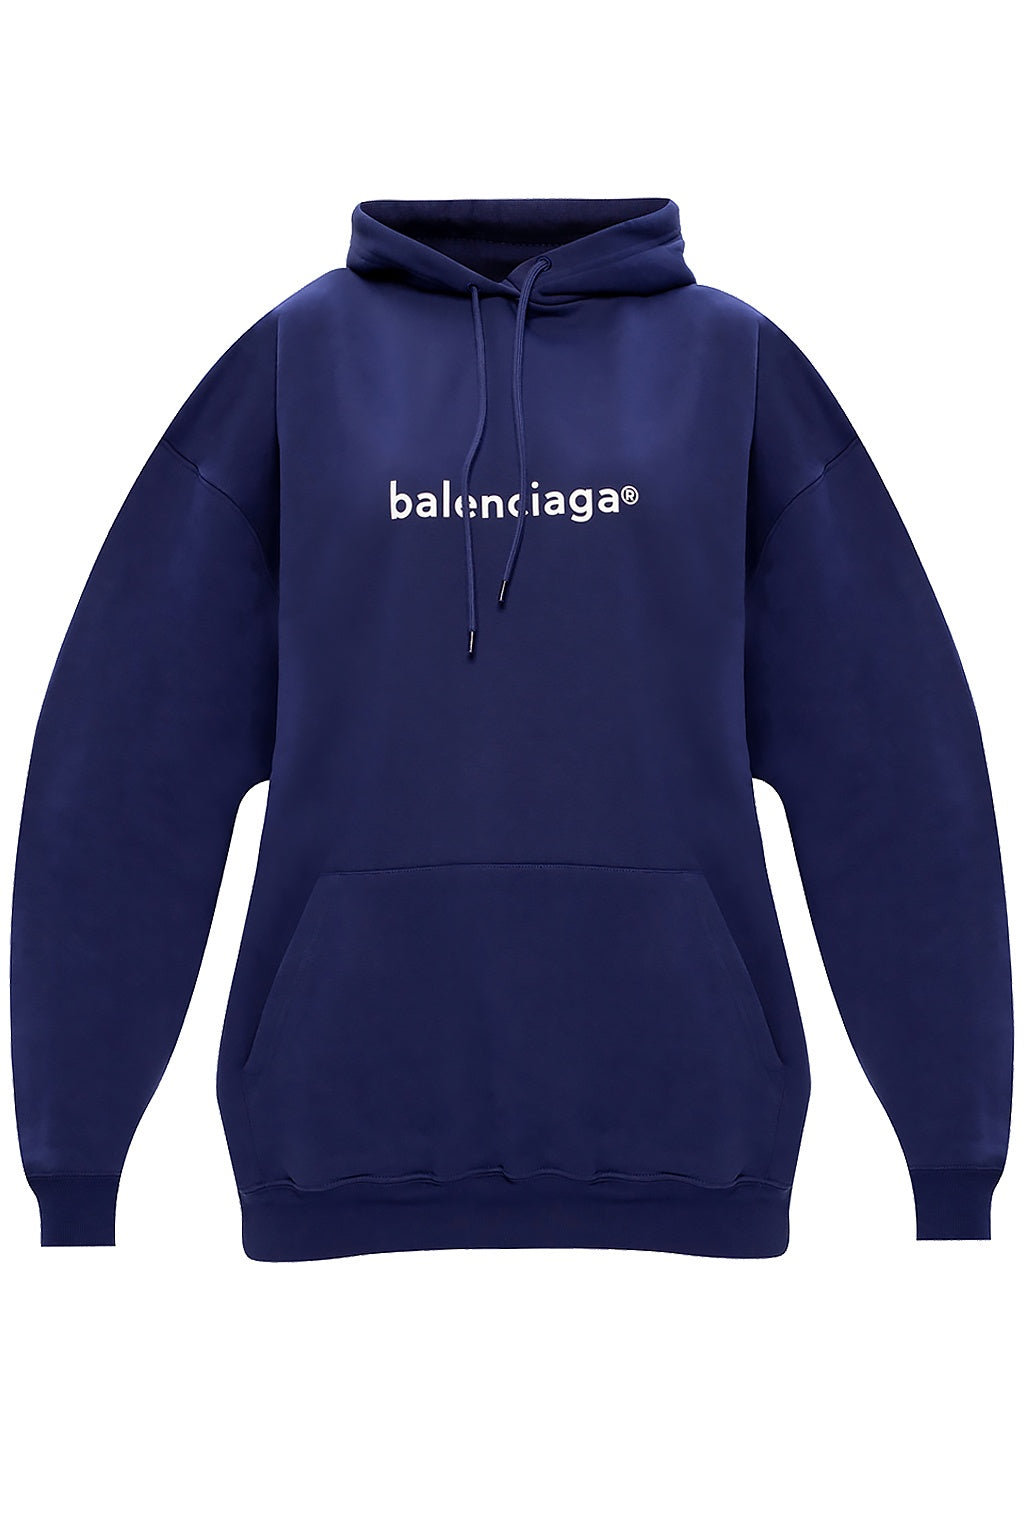 BALENCIAGA - Medium Fit Hoodie W | Pacific Blue/White